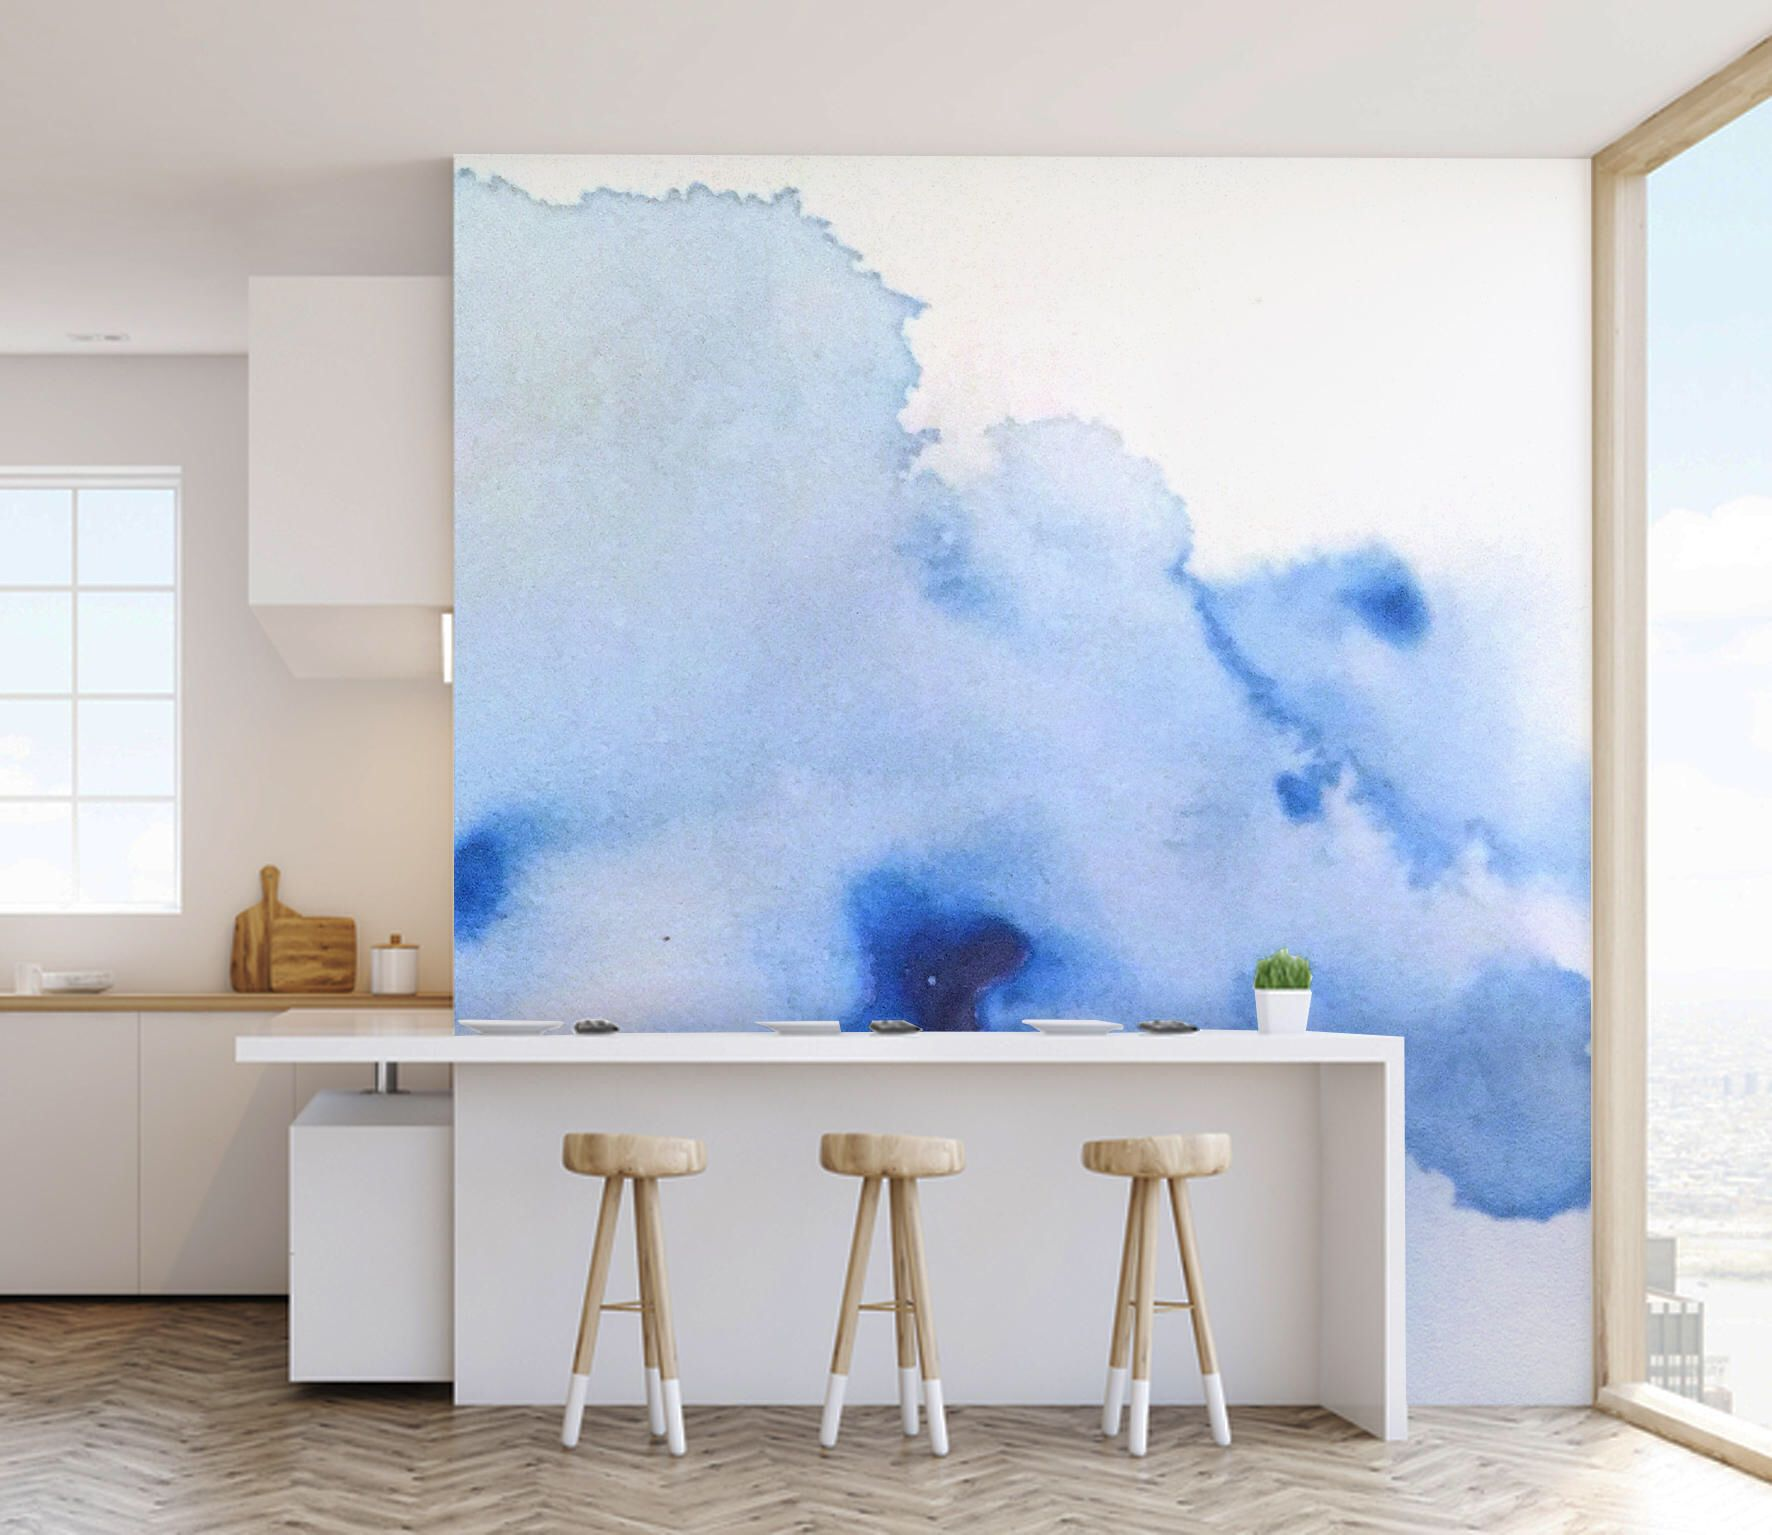 Watercolour Wash Wall Mural, Paste and Glue or Self